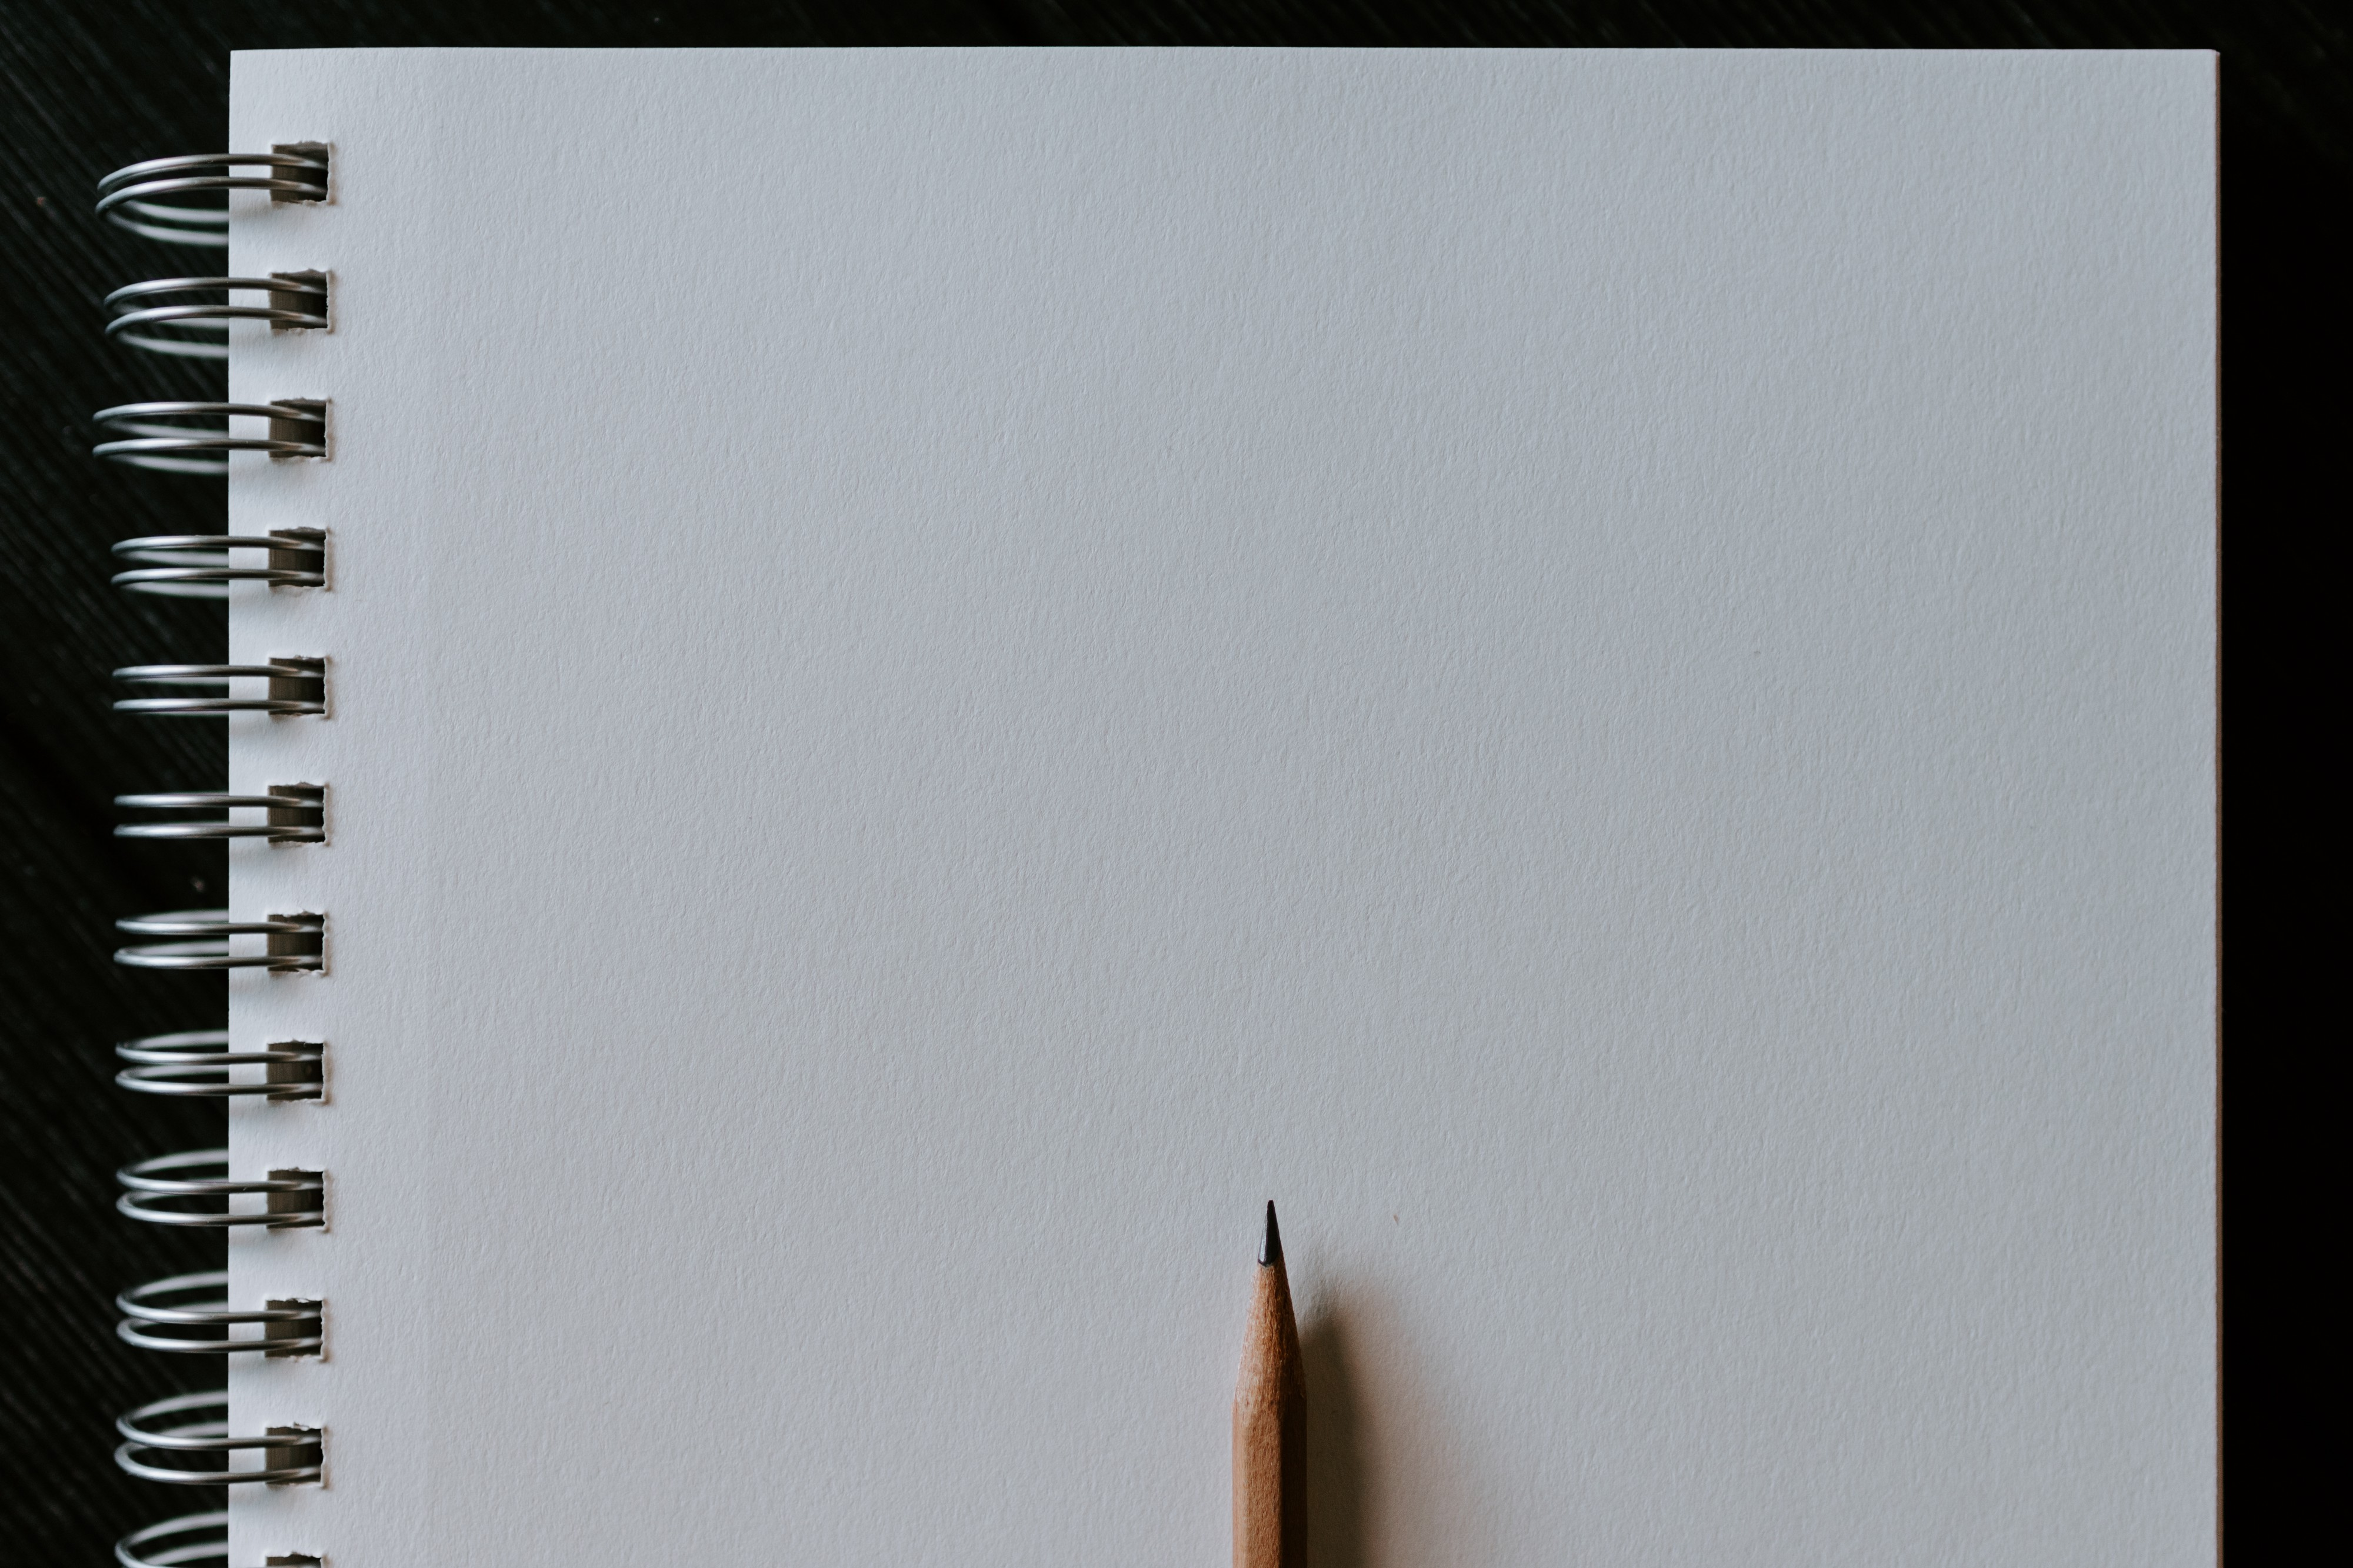 Blank notepad wit a pencil on top.